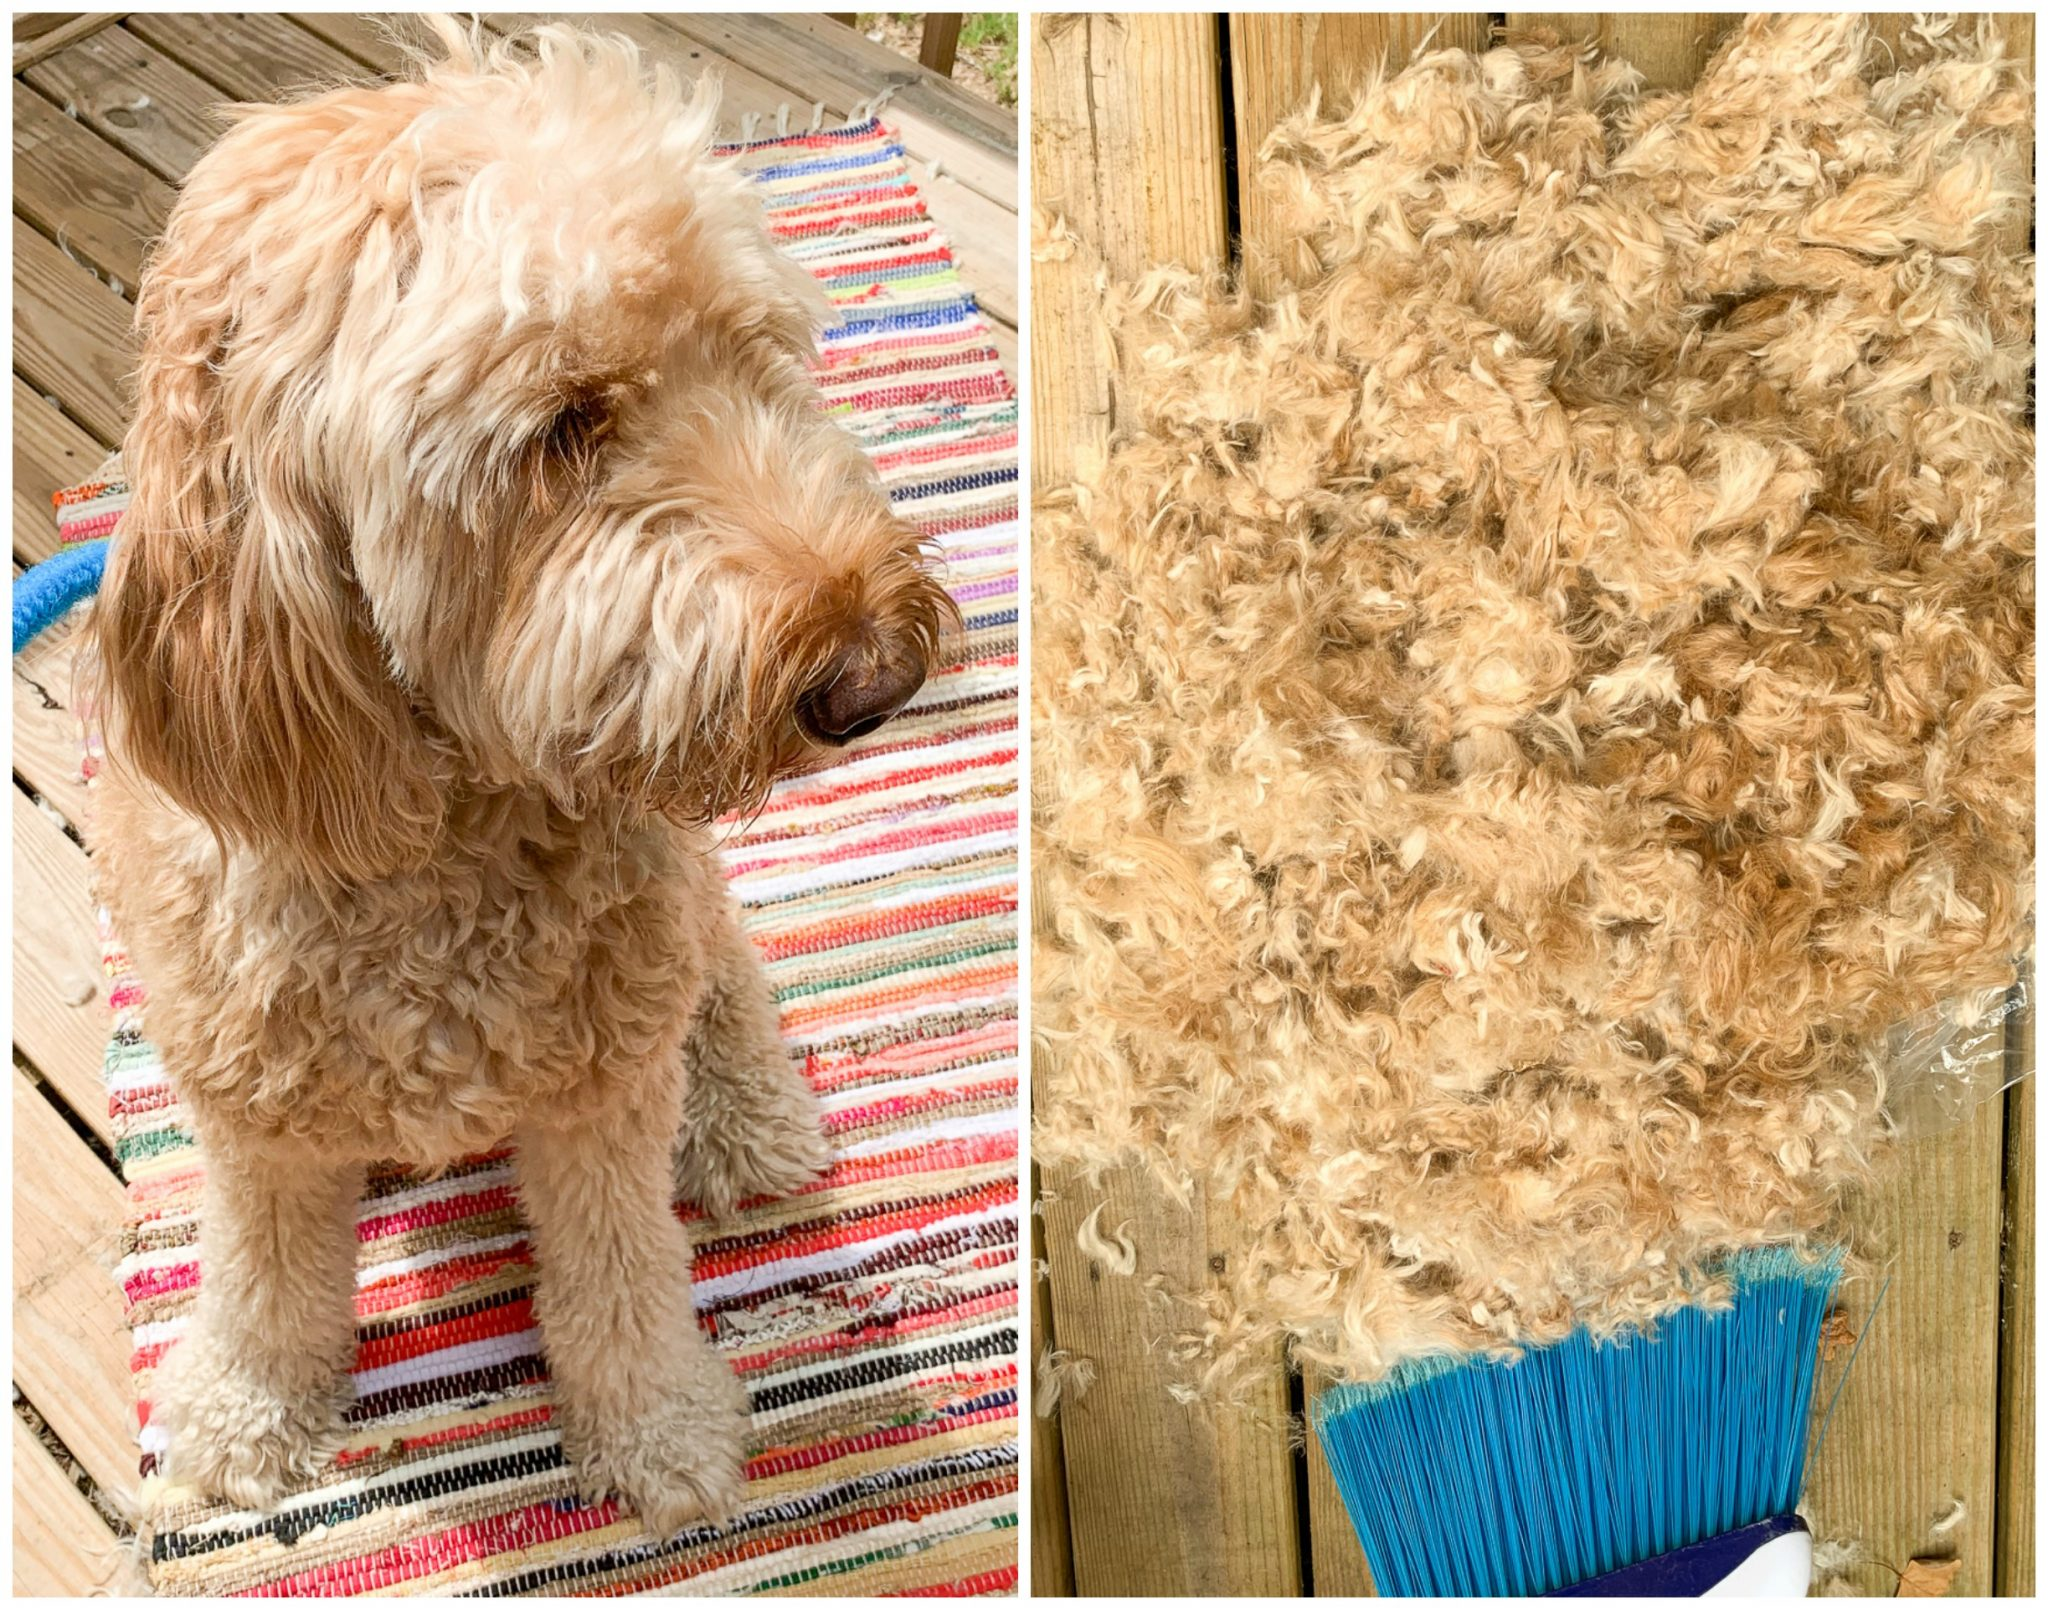 grooming, dog, shaving goldendoodle, dog, clipping, summer hair cut, goldendoodle, razor